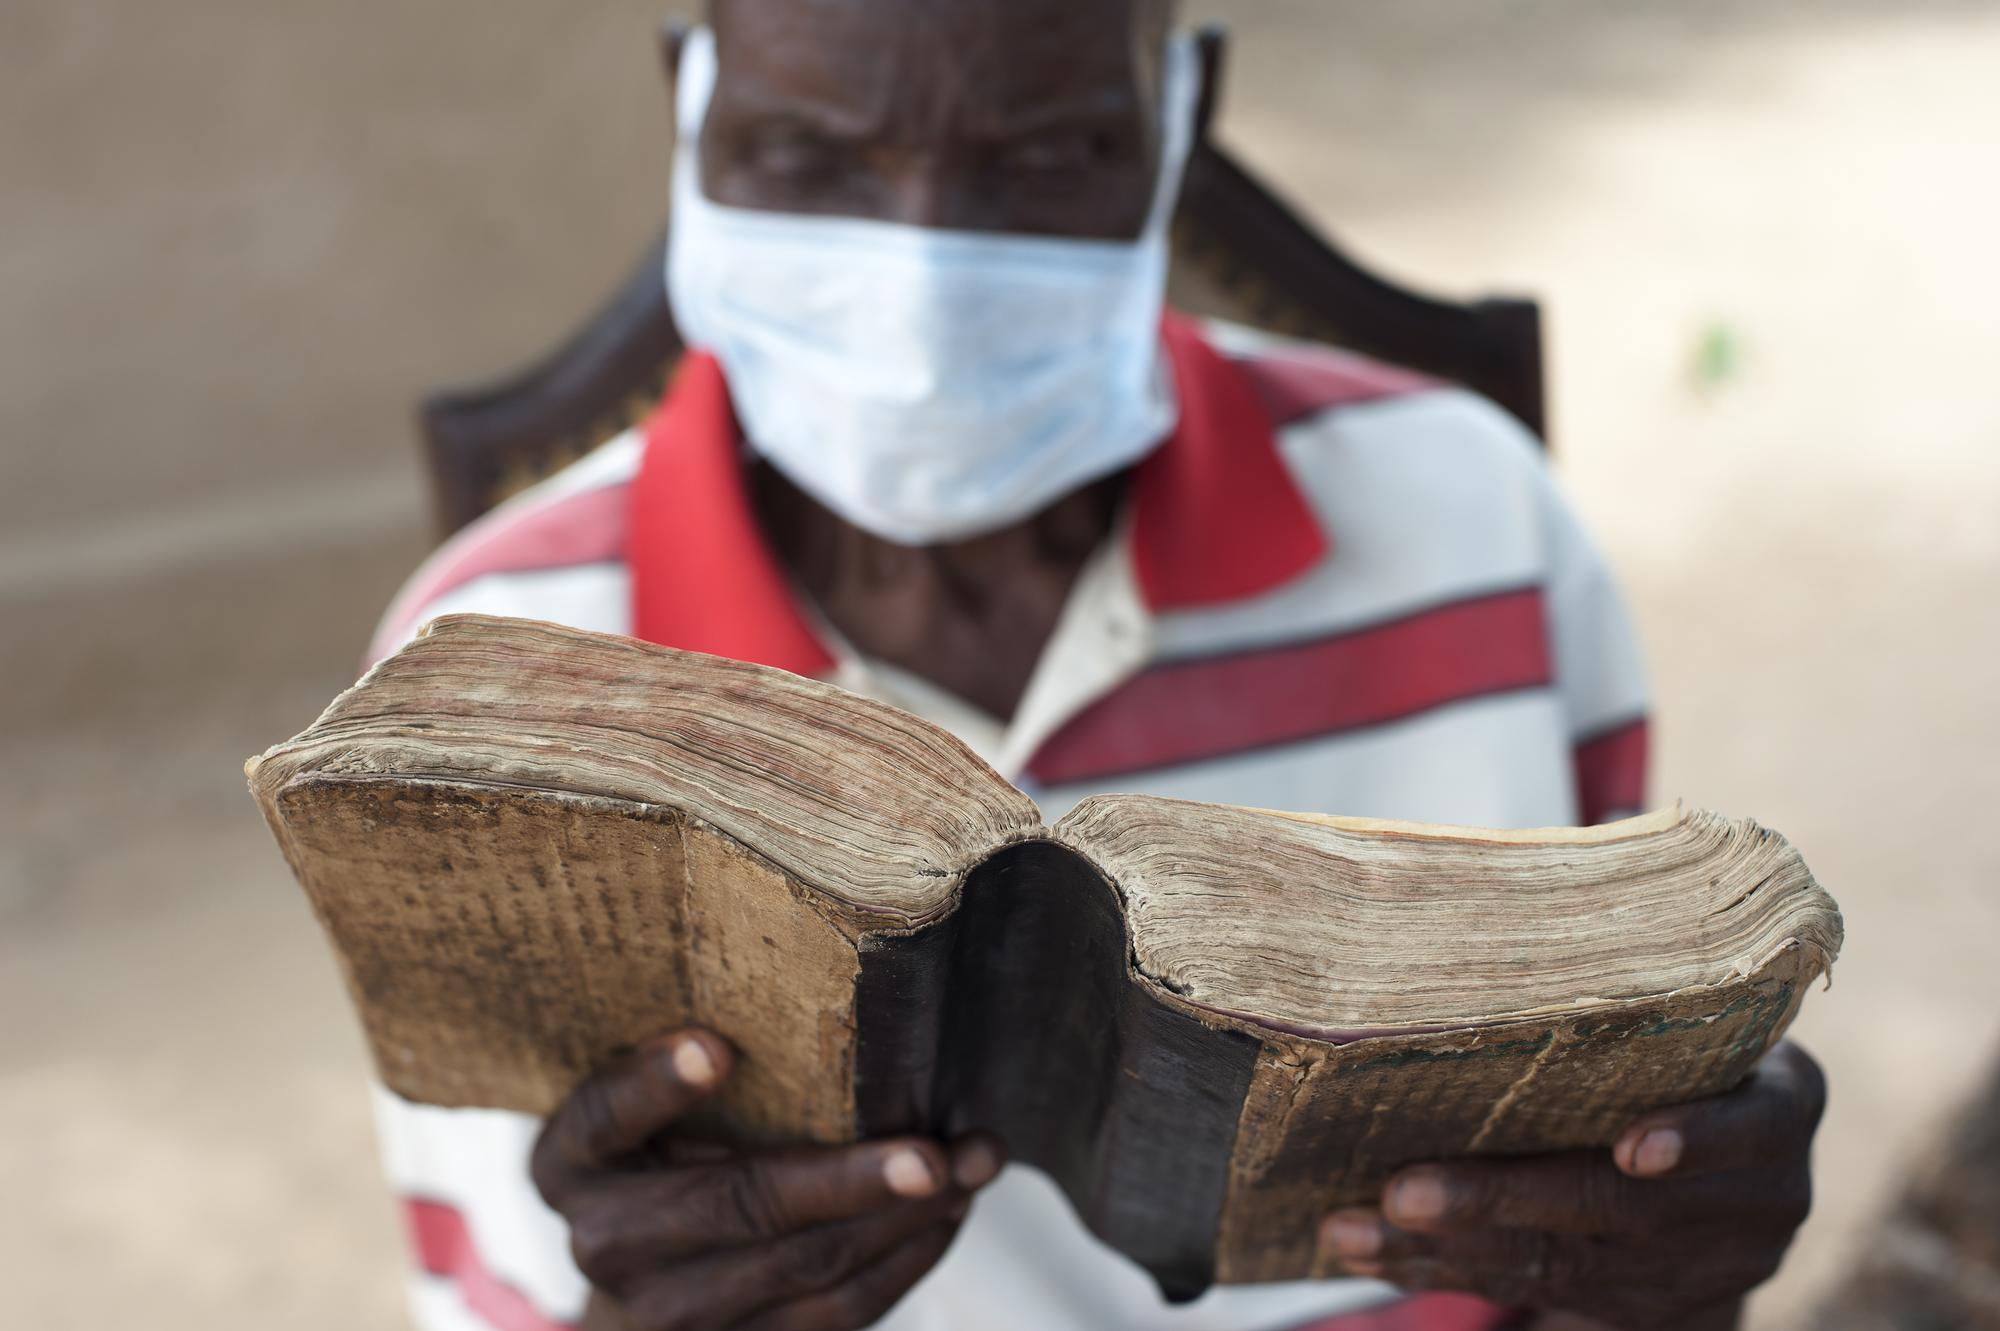 A man wearing a surgical mask reads a well-worn book.